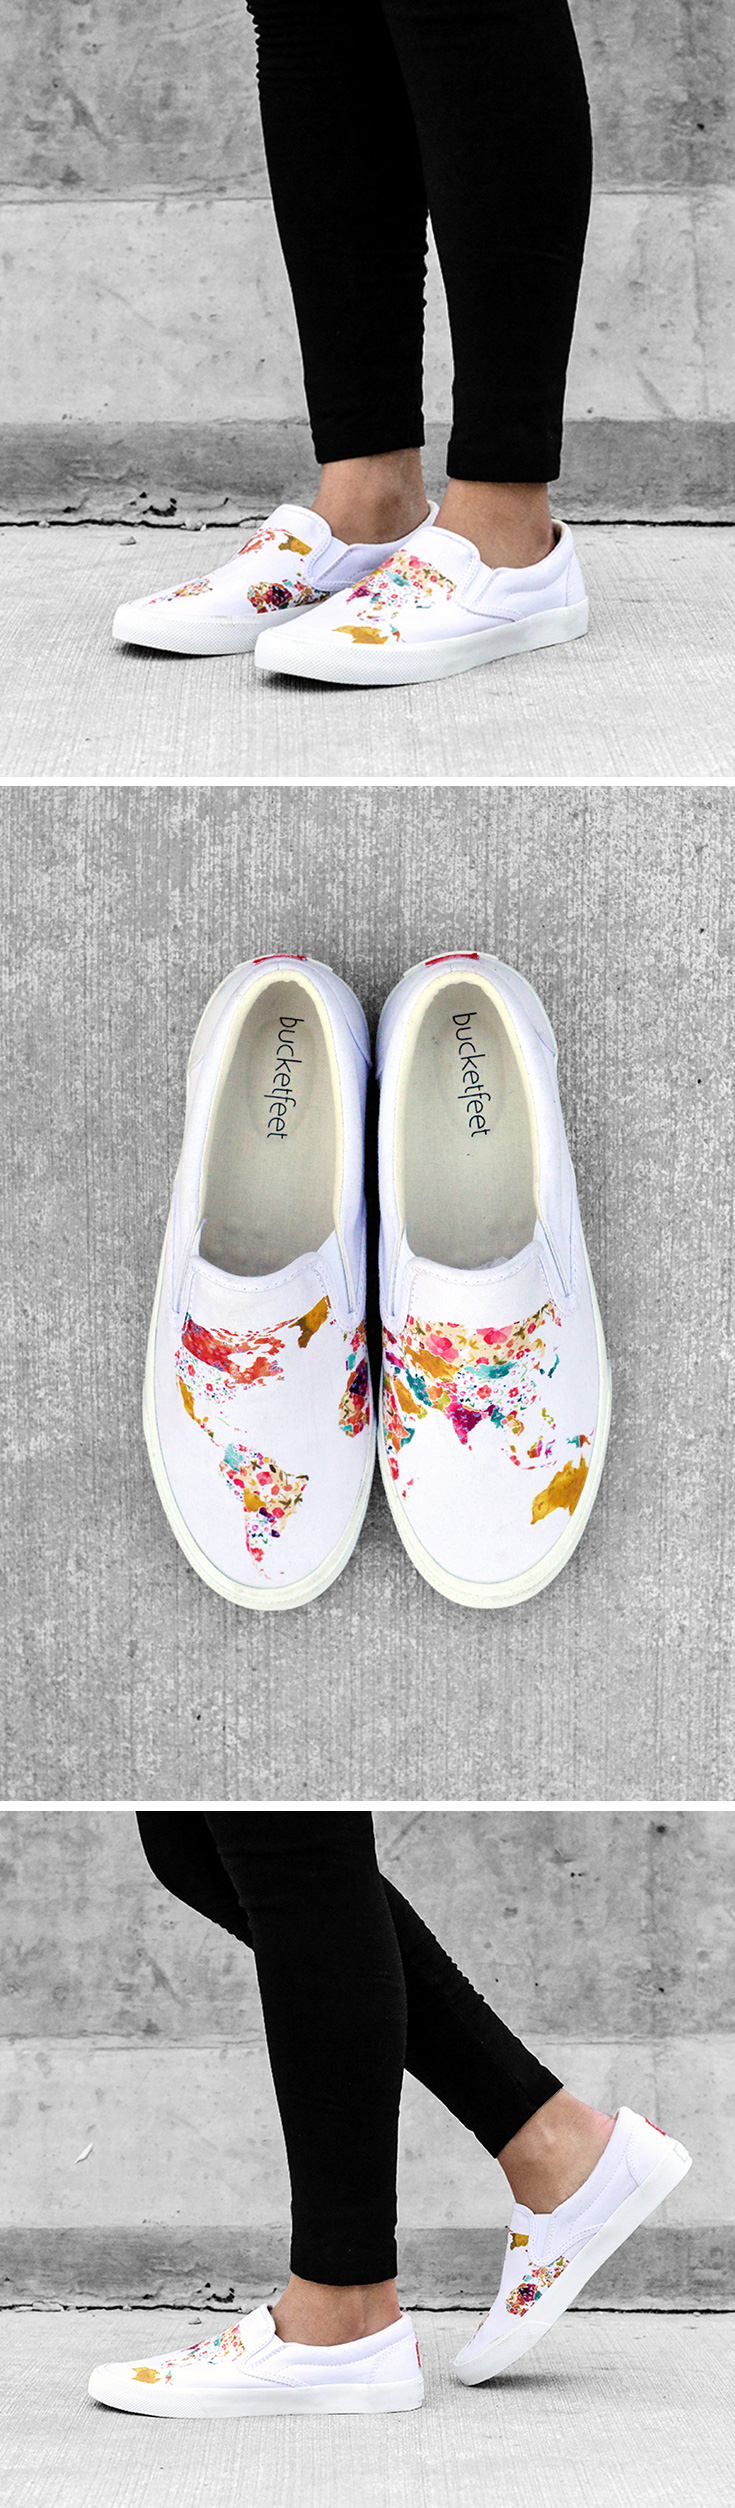 024b214b0b4b WORLD MAP Watercolor meets canvas in these black slip-ons by longtime  Bucketfeet artist Meera Lee Patel. The Brooklyn-based watercolorist infuses  her work ...